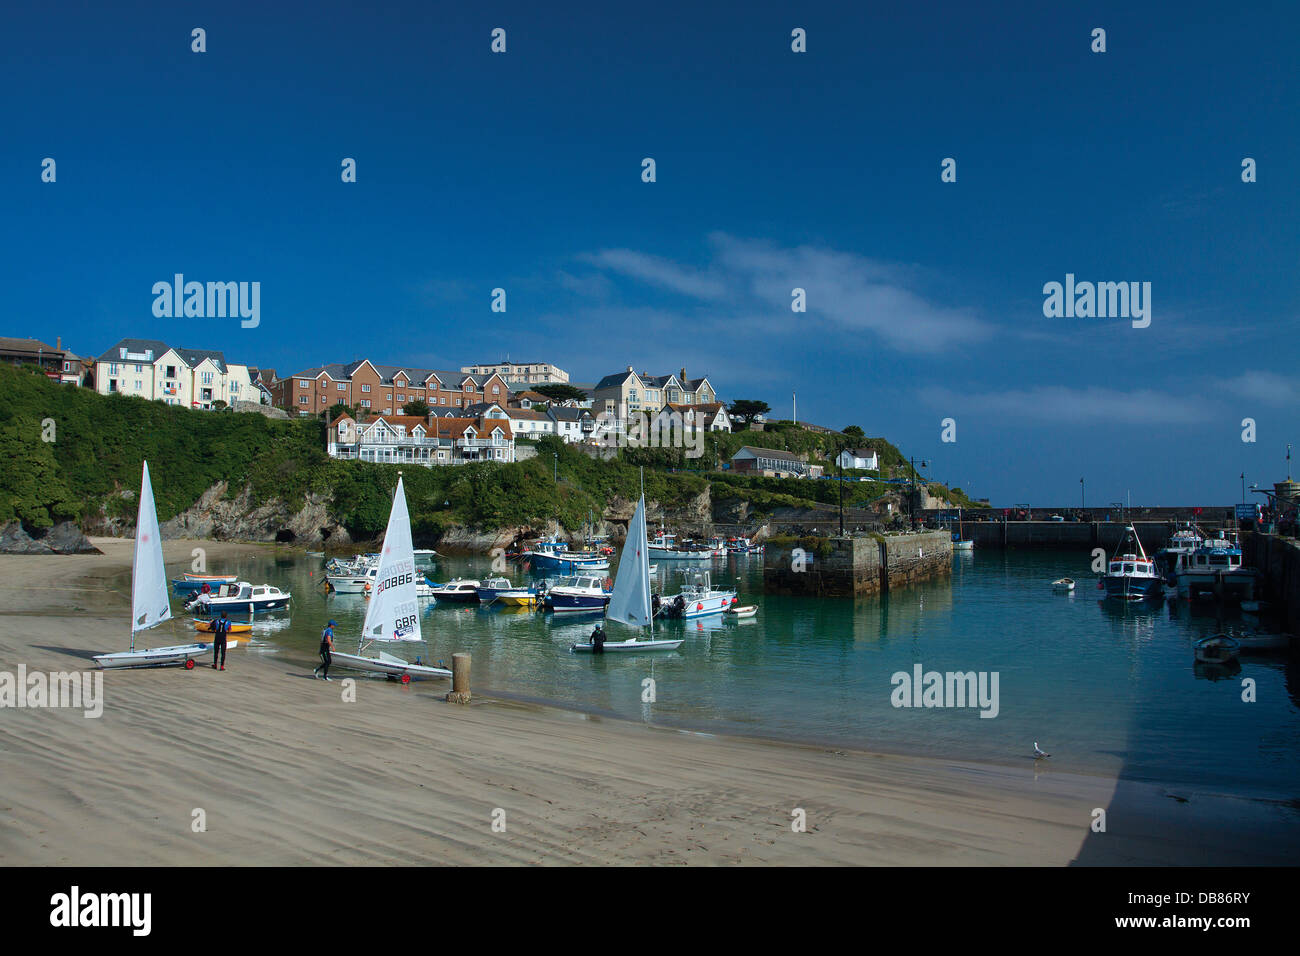 Newquay Harbour, Newquay, Cornwall - Stock Image